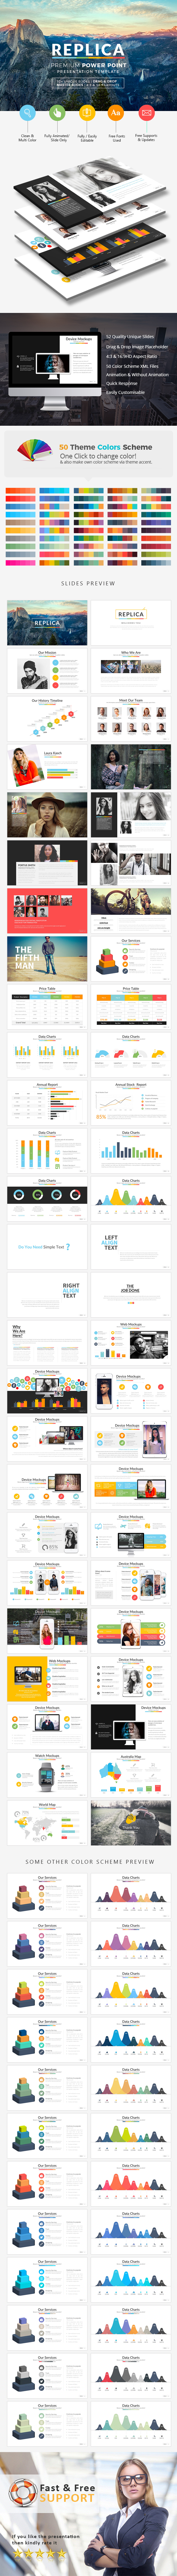 Replica Power Point Presentation - Business PowerPoint Templates